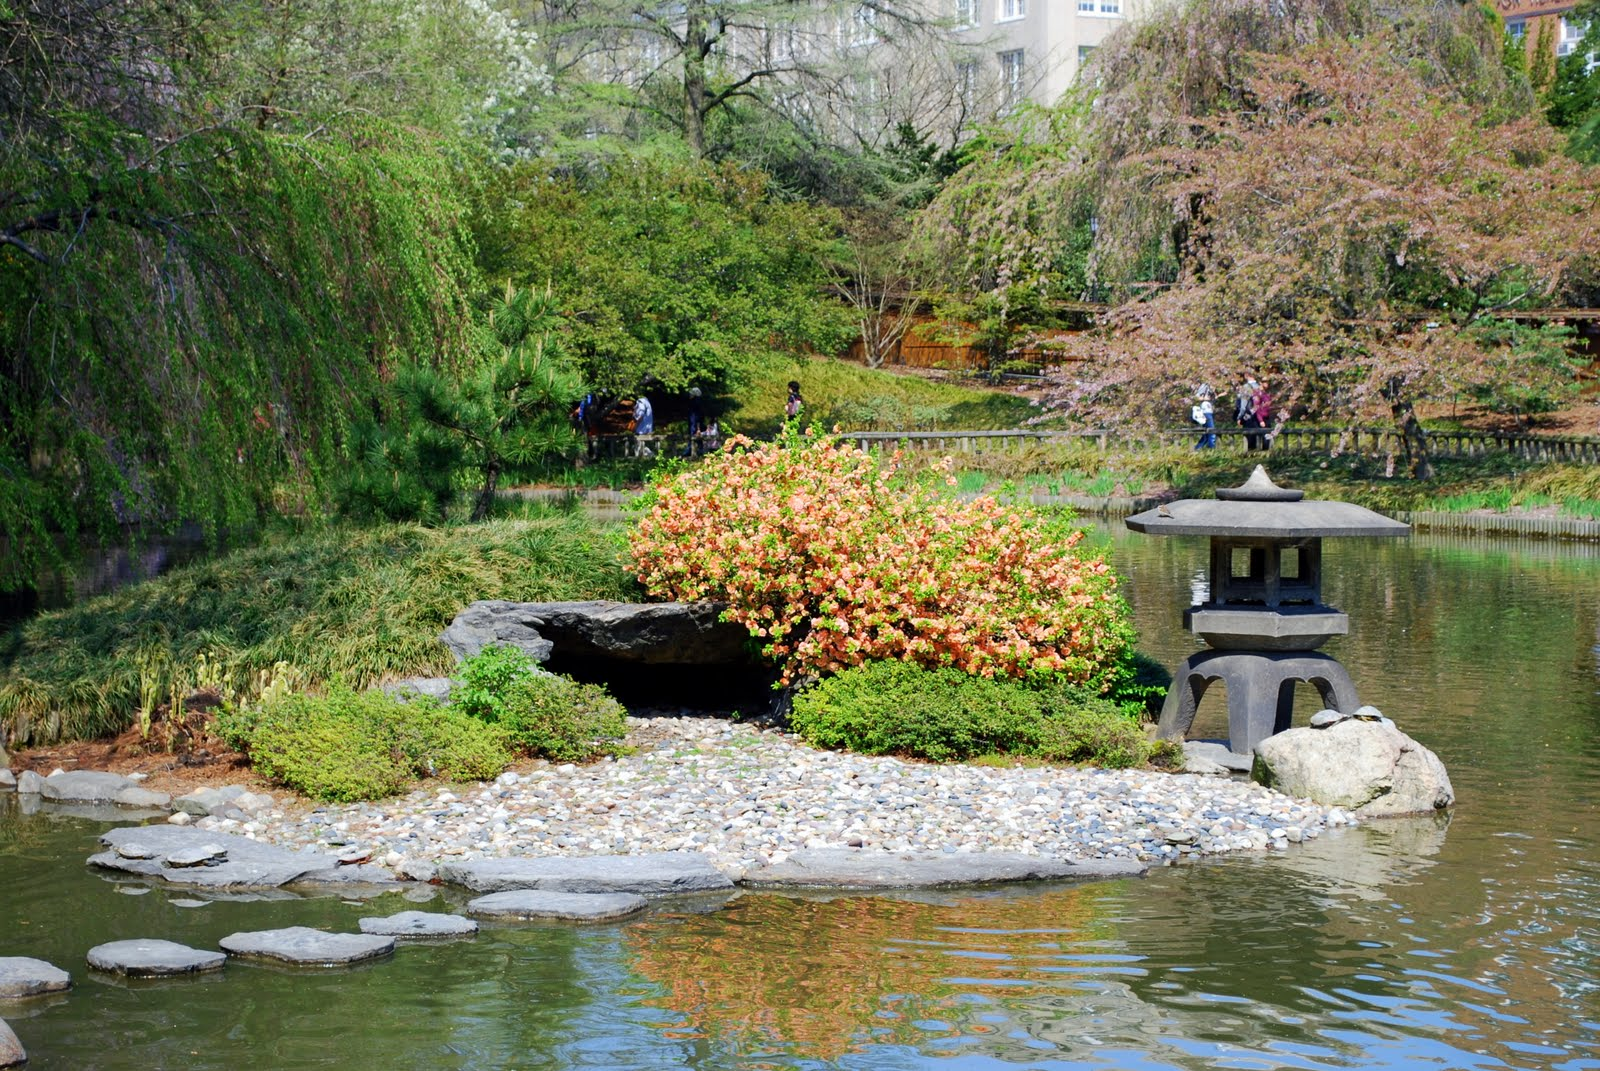 Mille fiori favoriti the brooklyn botanic japanese hill for Japanese garden pond design